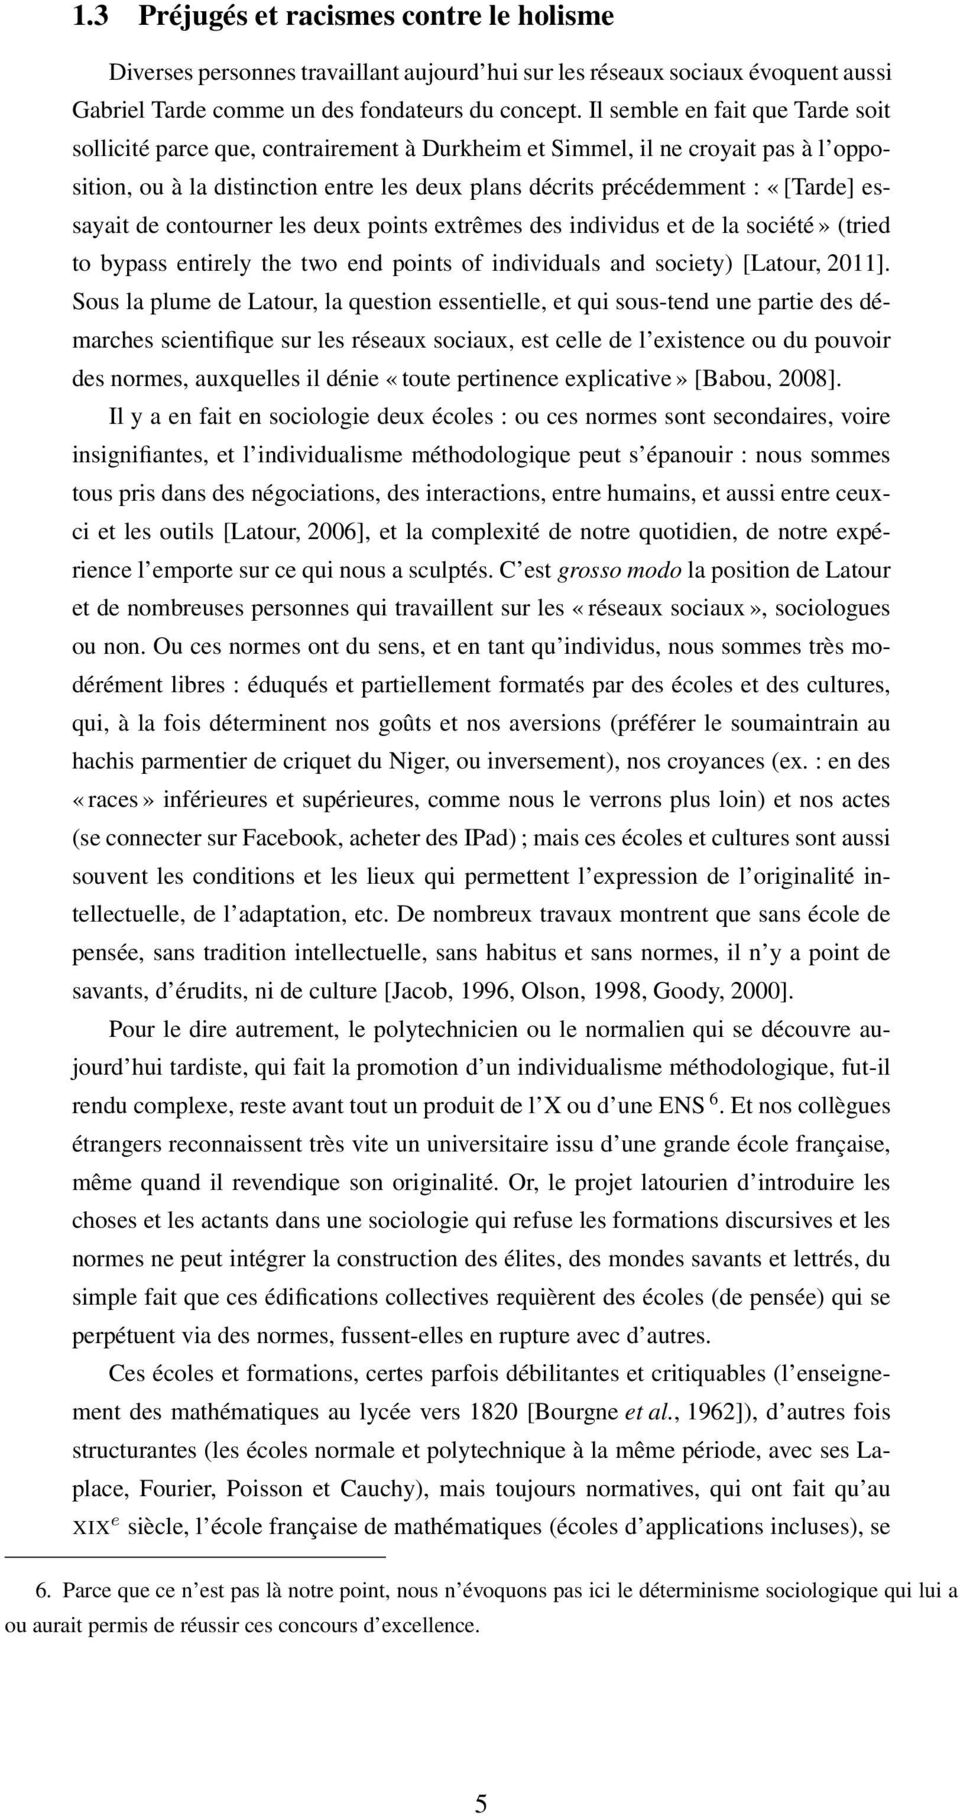 essayait de contourner les deux points extrêmes des individus et de la société» (tried to bypass entirely the two end points of individuals and society) [Latour, 2011].